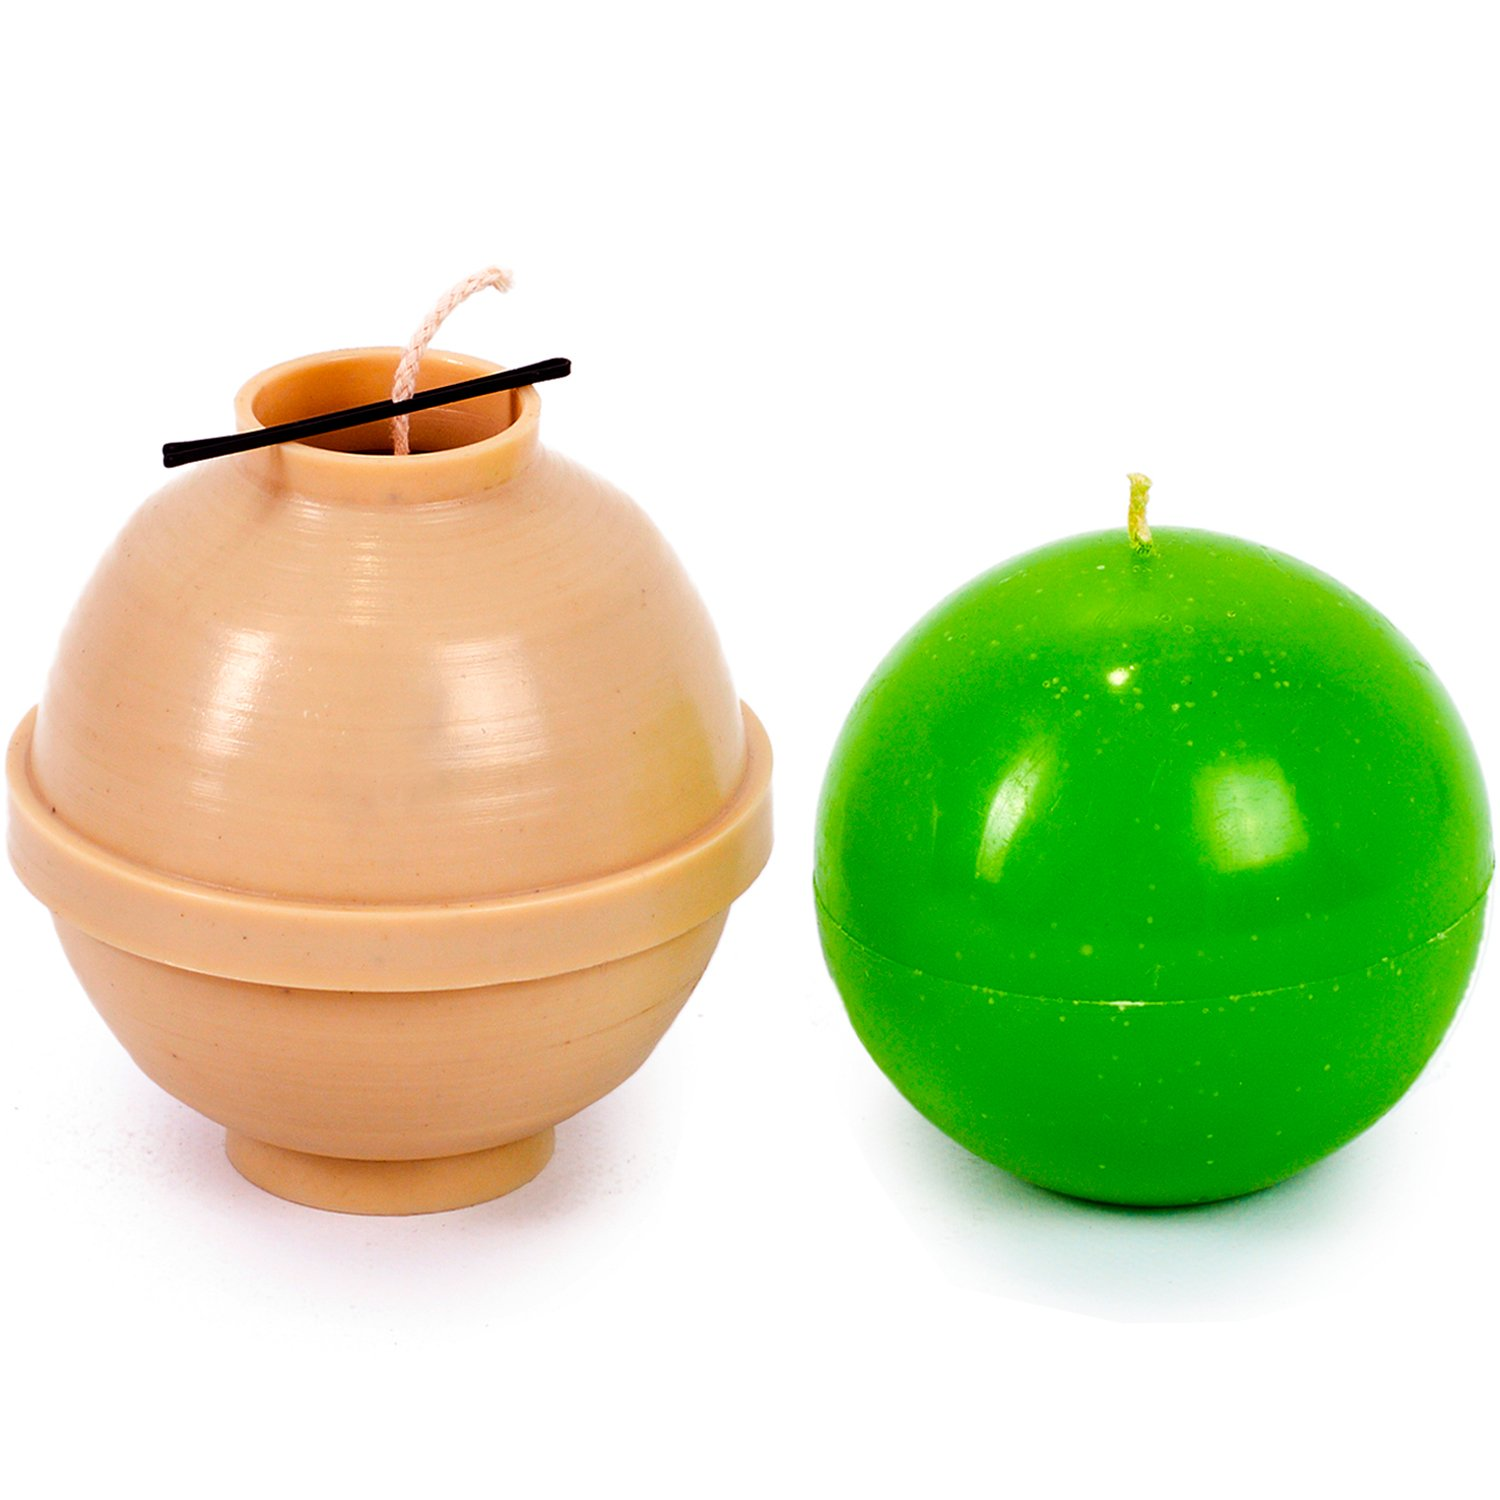 30 ft Ball diameter: 4.7 in Sphere of wick included as a gift Plastic candle molds for making candles